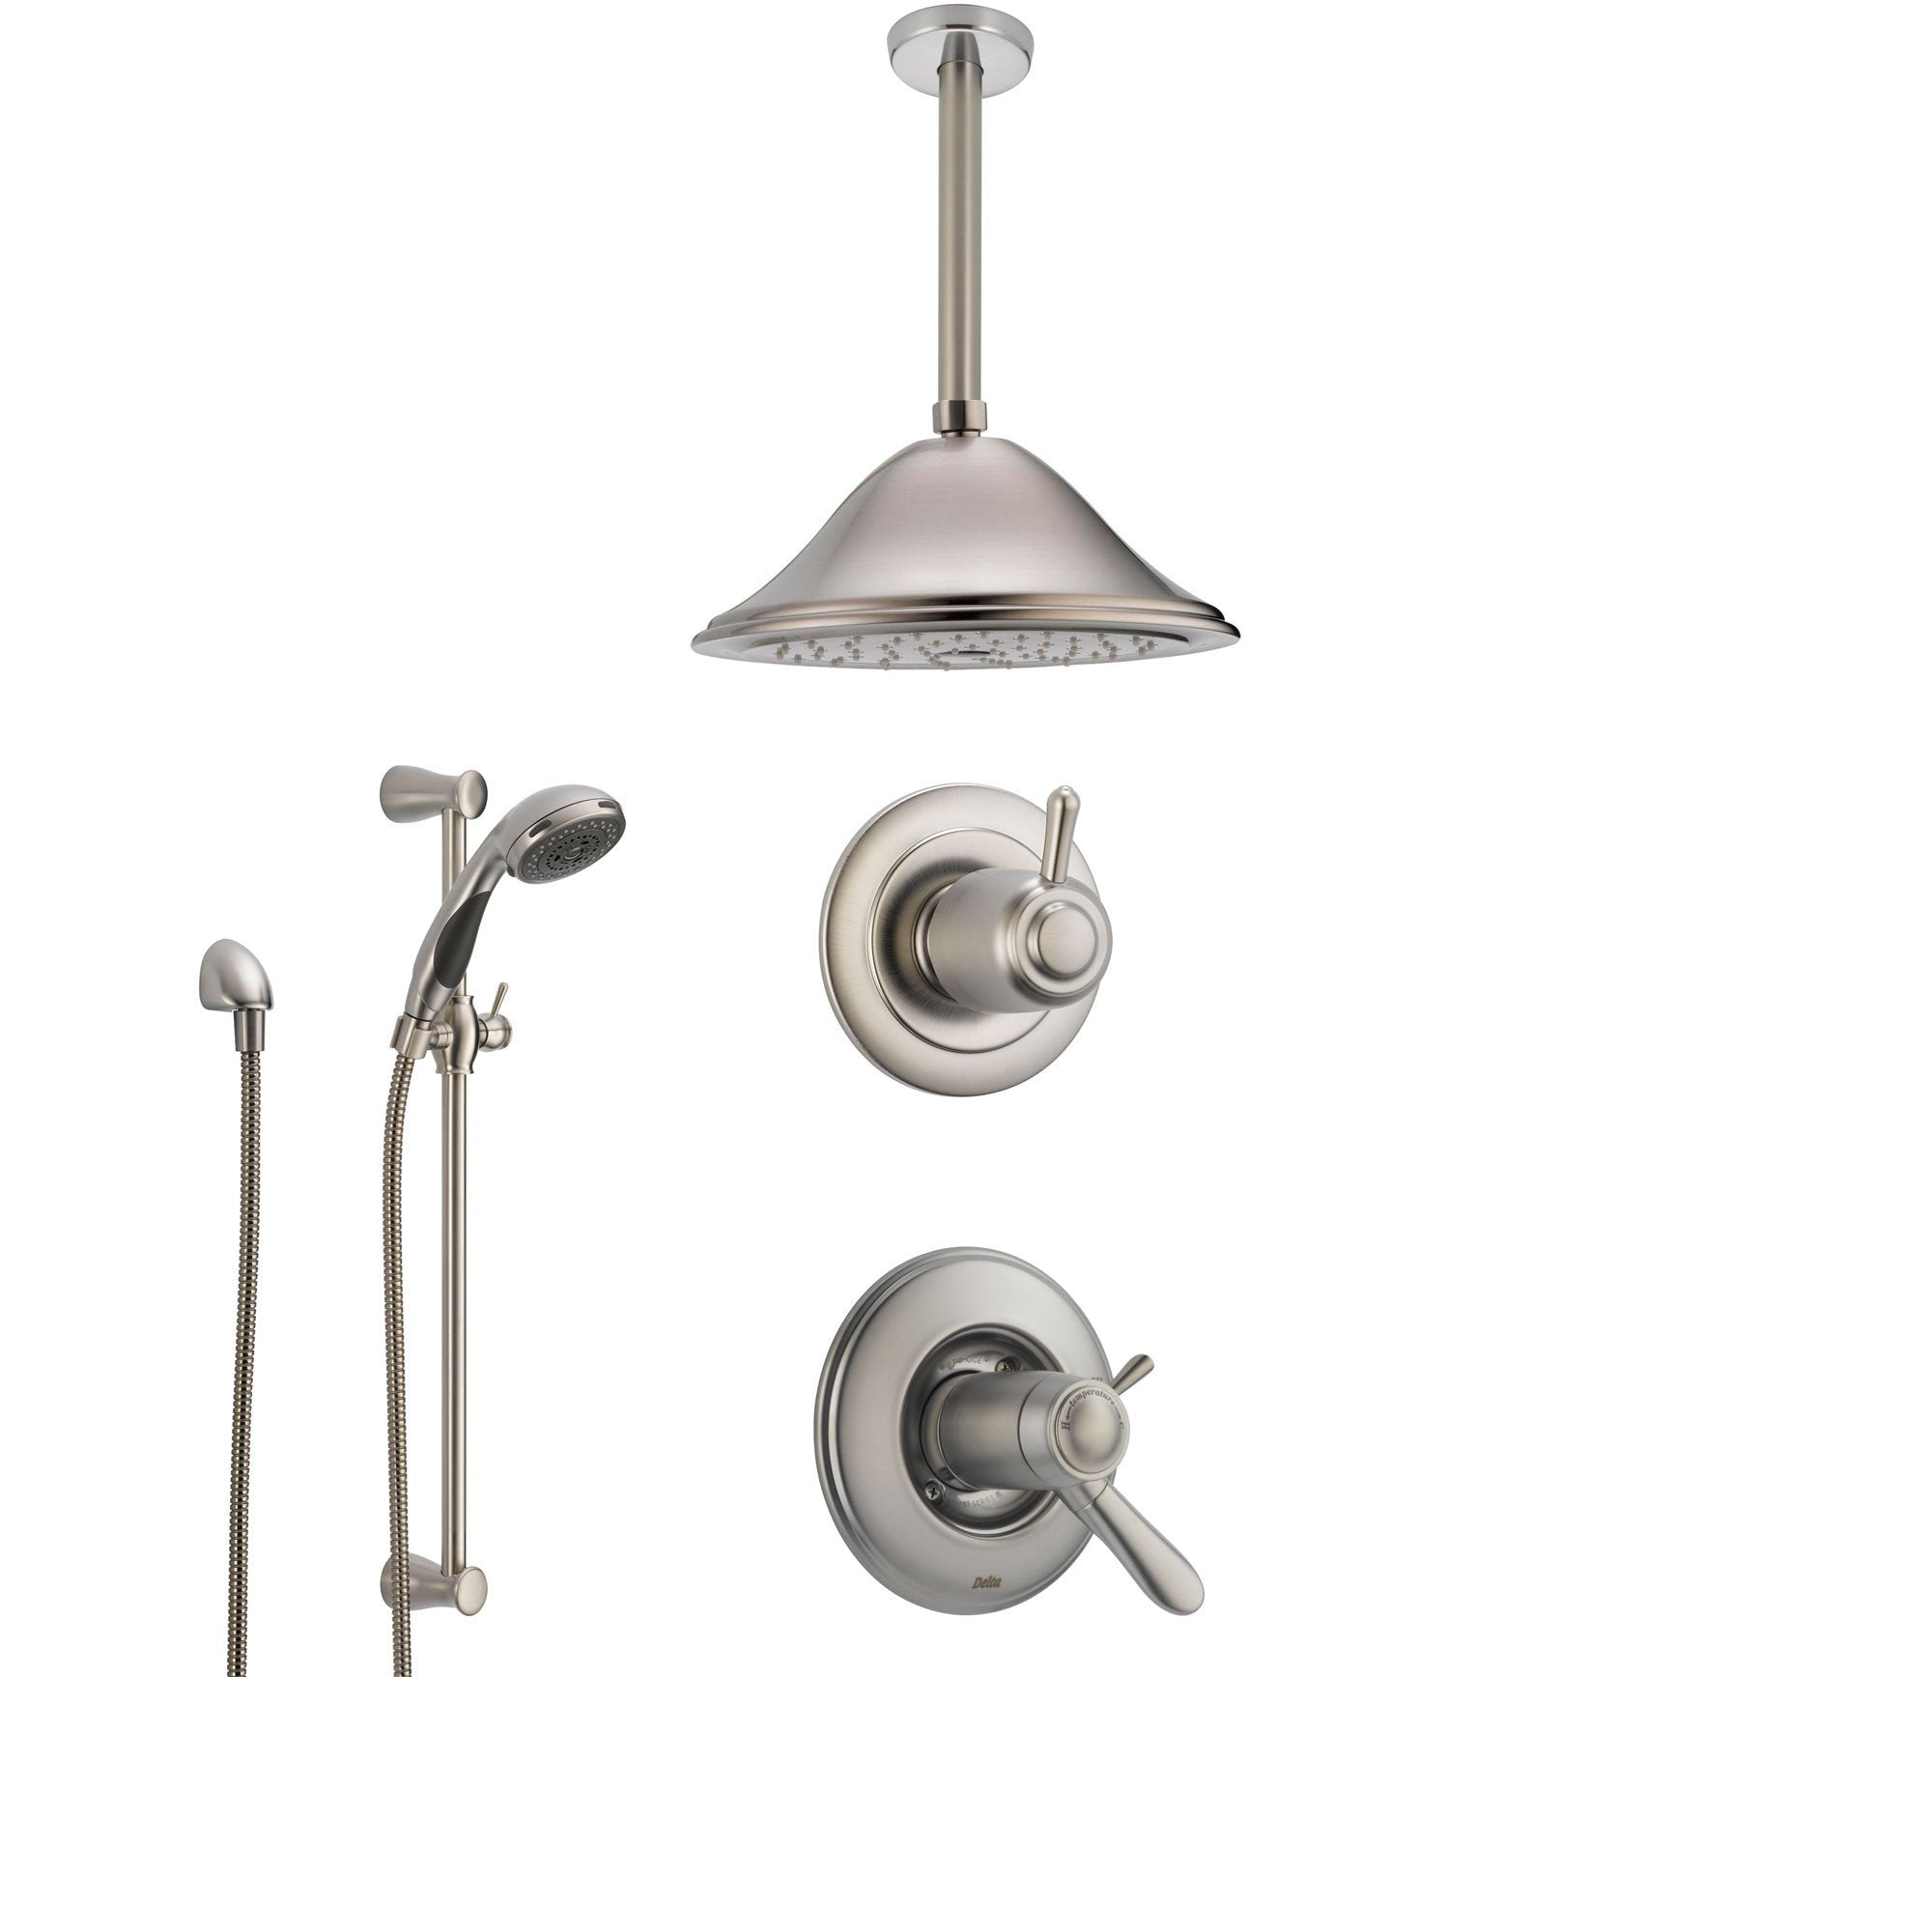 Delta Lahara Stainless Steel Shower System with Thermostatic Shower Handle, 3-setting Diverter, Large Ceiling Mount Rain Showerhead, and Handheld Shower Spray SS17T3883SS